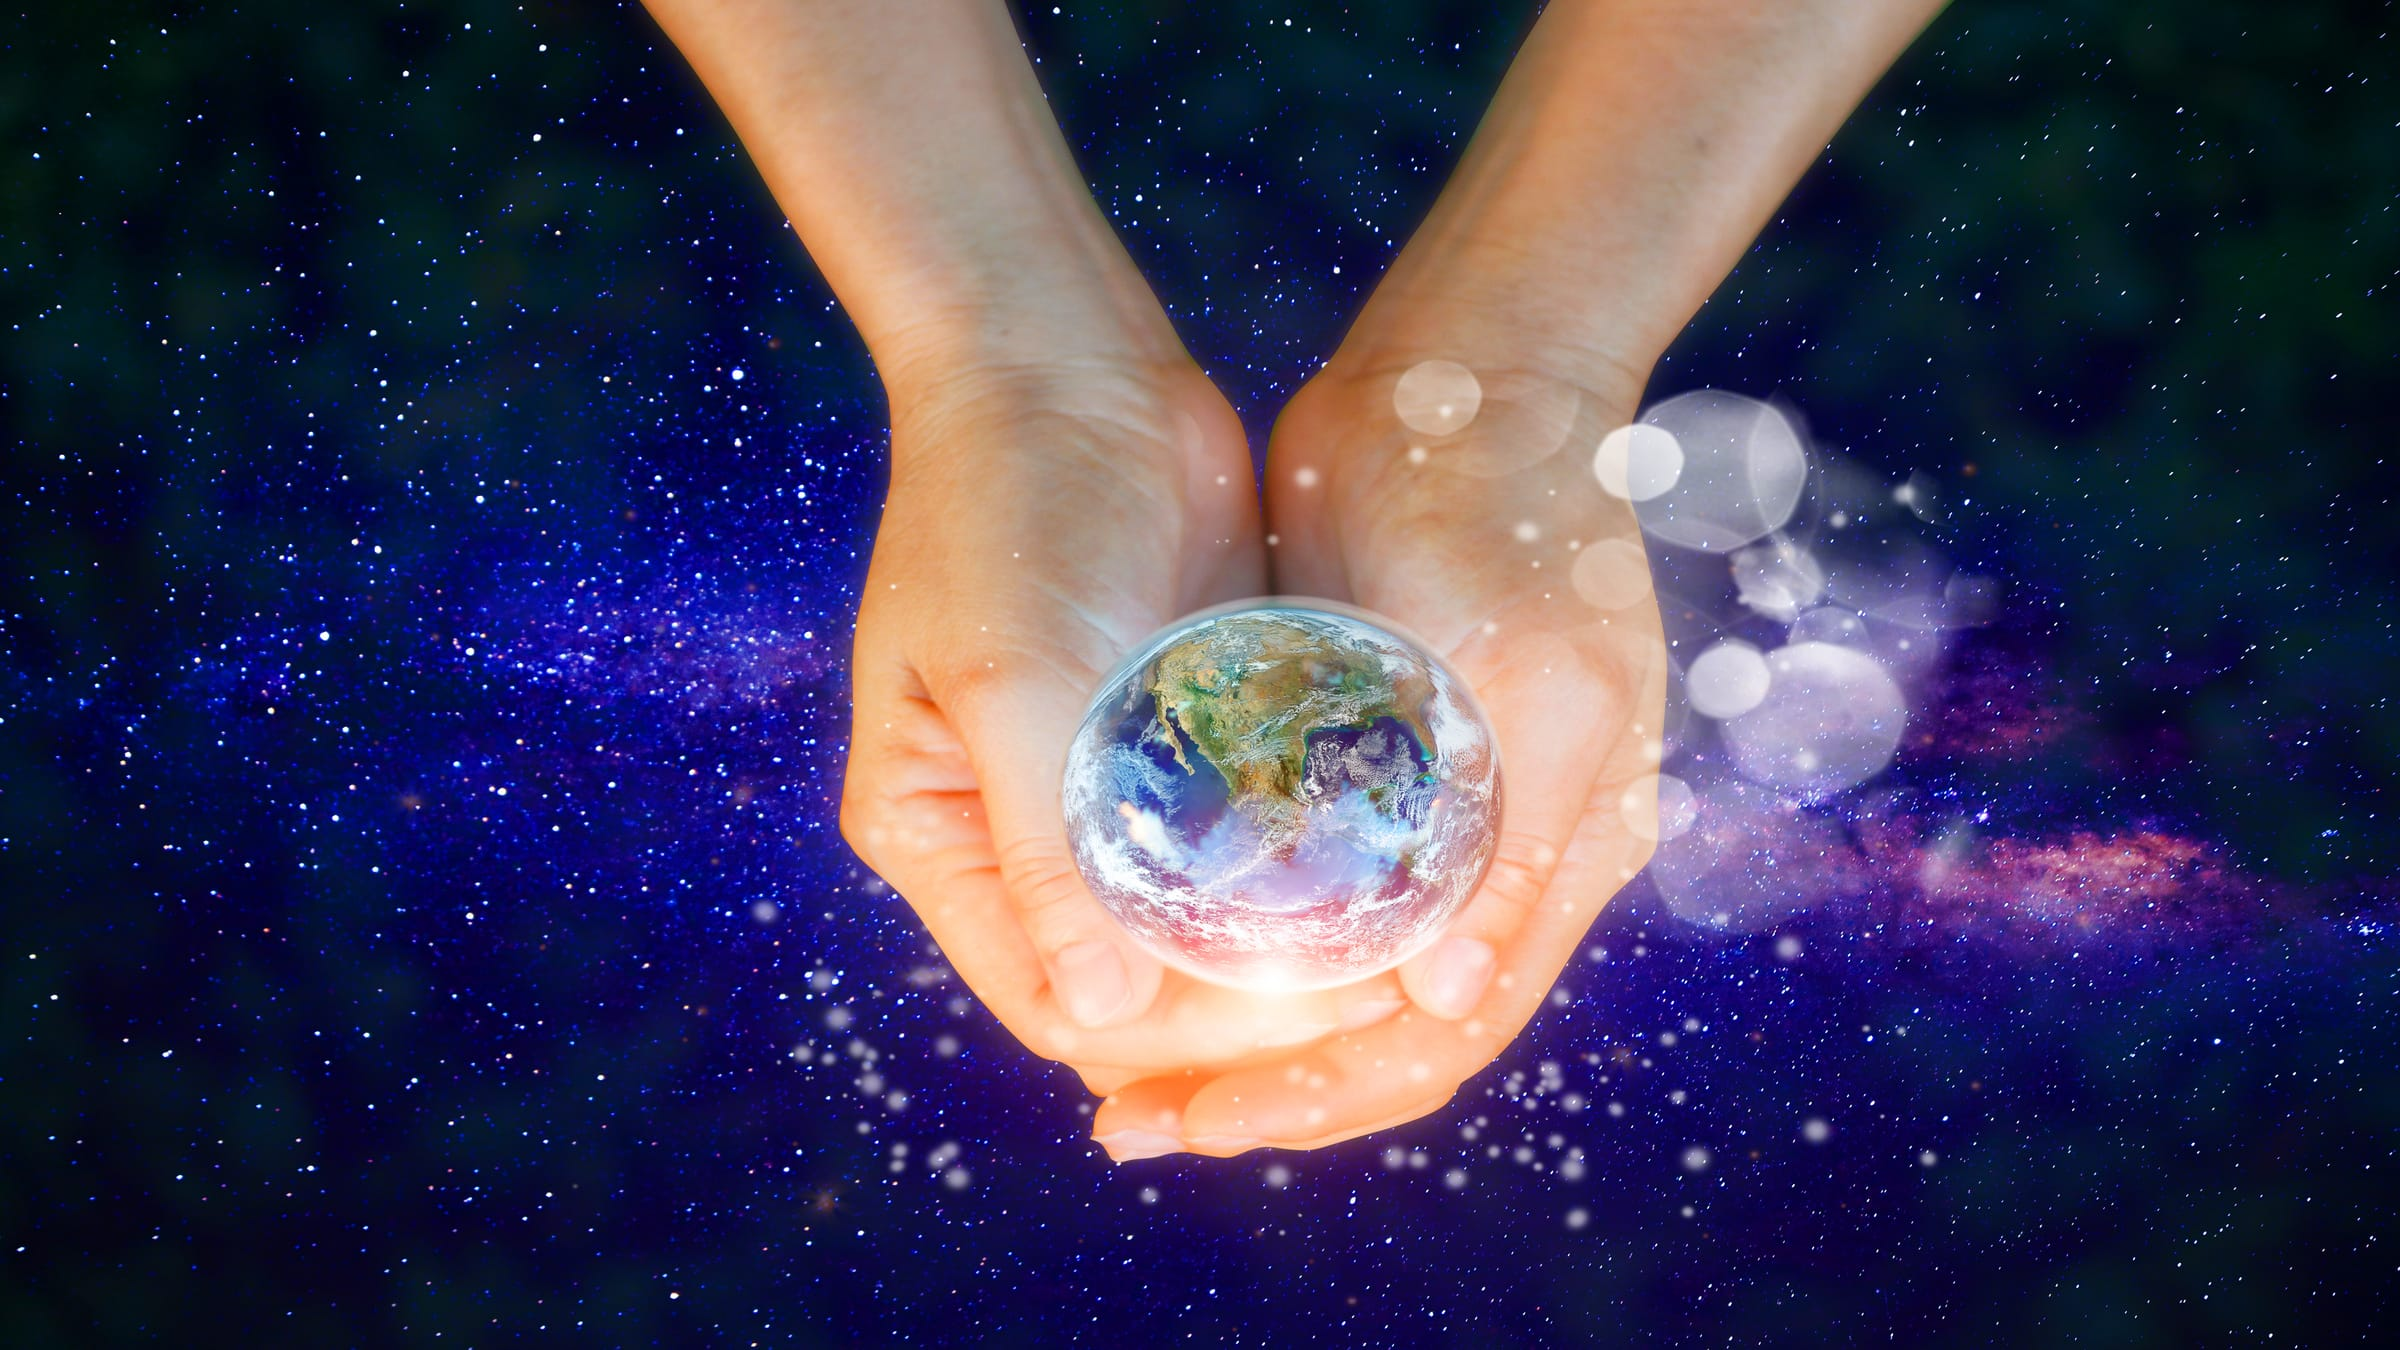 Discover your inner world with Synctuition's Level 4.